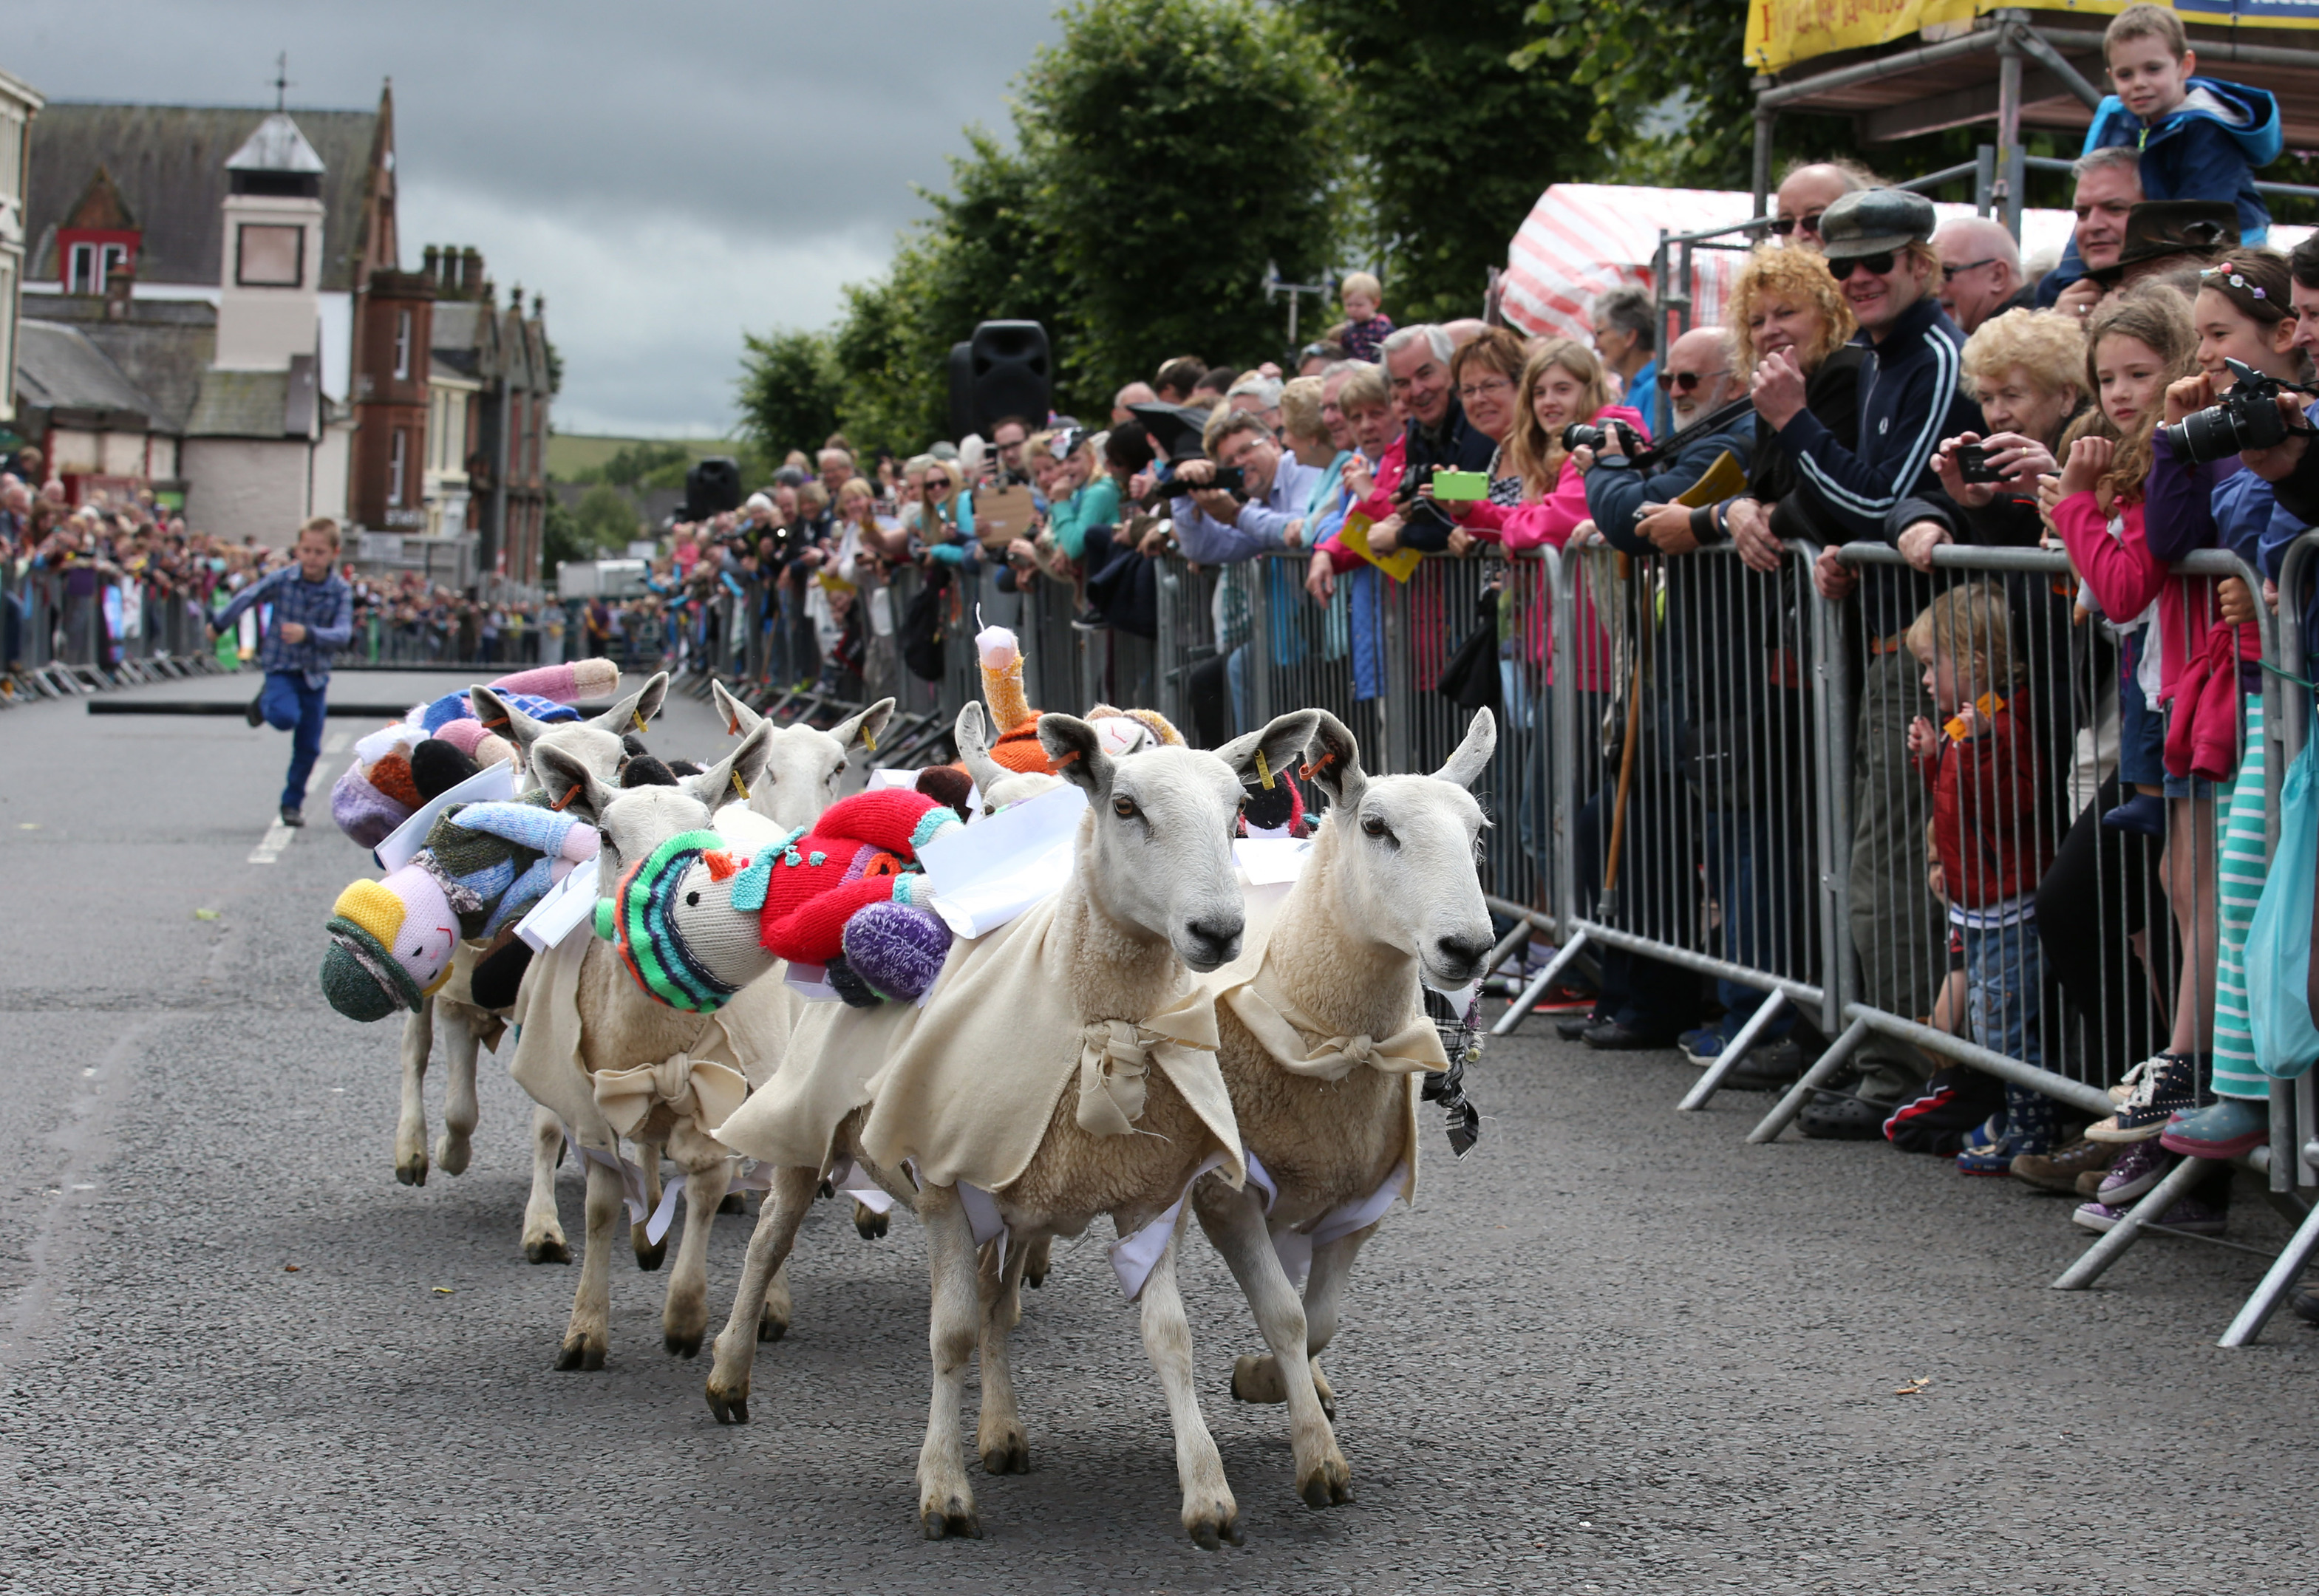 Sheep race down Moffat High Street in Dumfriesshire during the annual Moffat Sheep Races (Andrew Milligan / PA Wire)